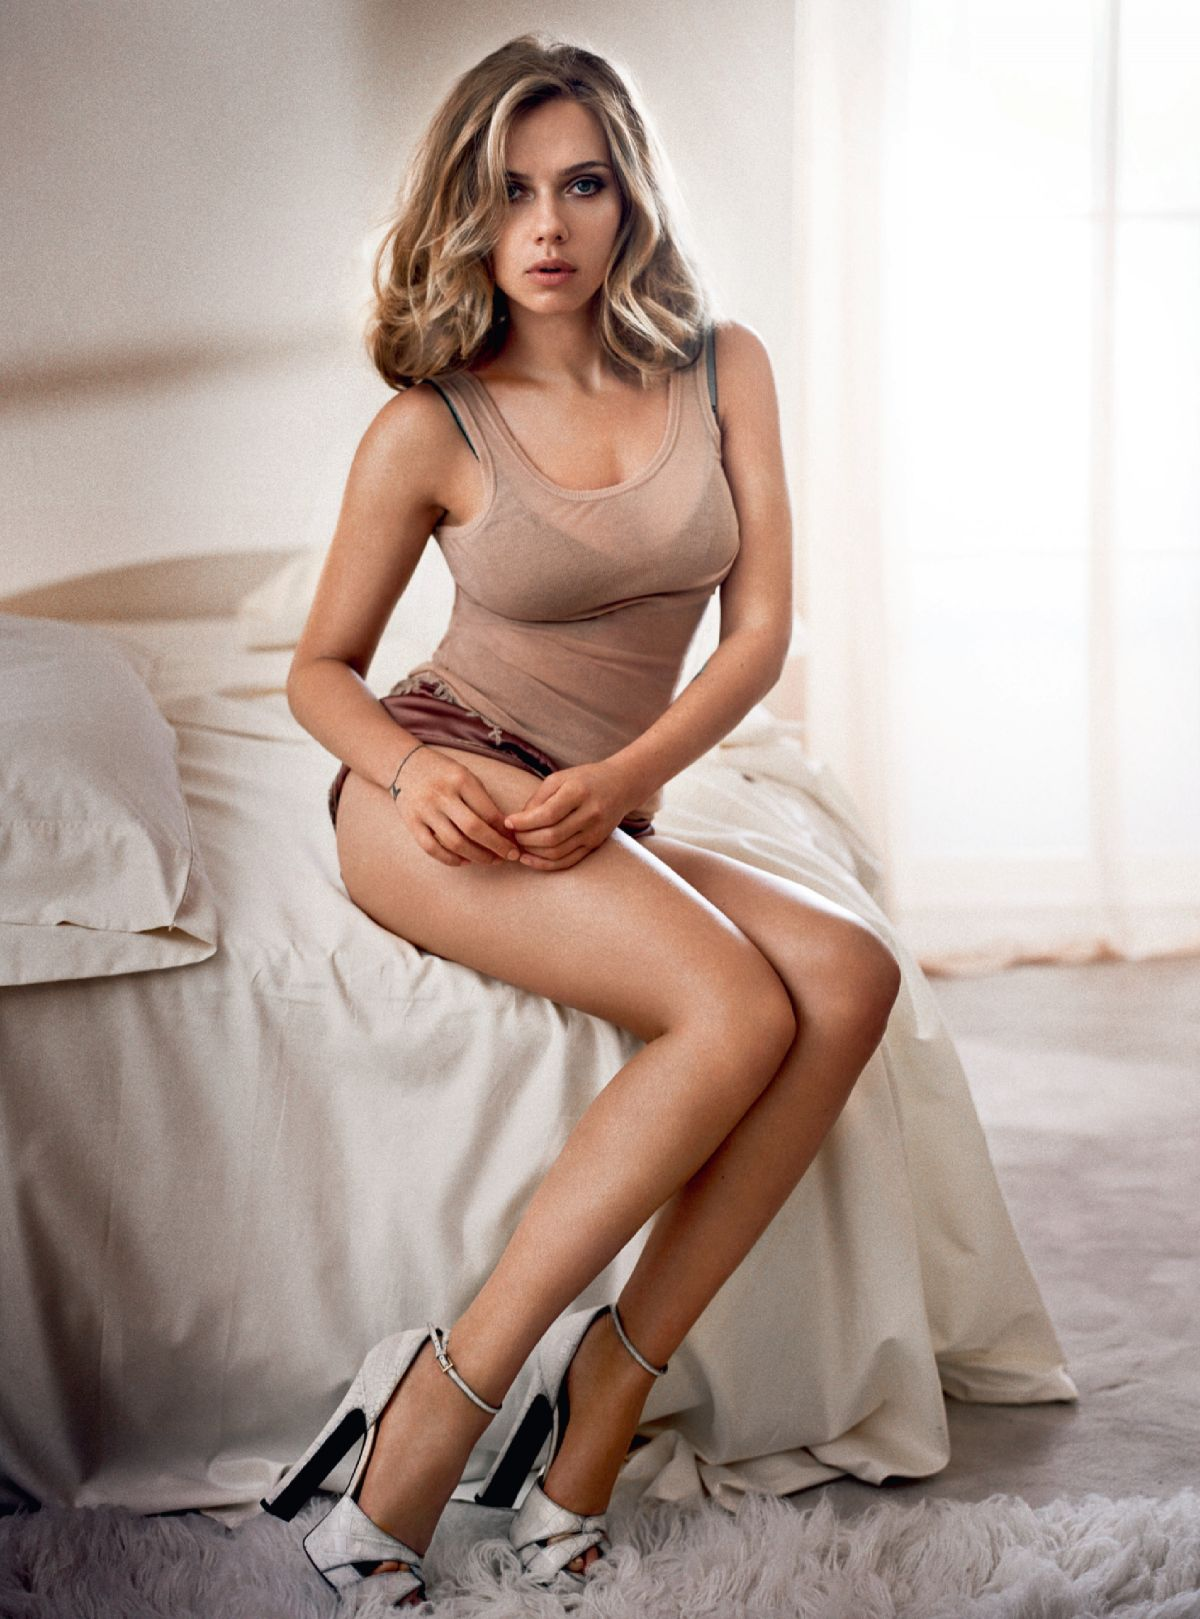 Action Hottie Of The Week Scarlett Johansson as well Top 10 Unusual But Beautiful Women besides Catherine Zeta Jones additionally Captain Phillips besides List Top 10 Beautiful Hottest Hollywood Actresses. on oscar nomination 2015 list